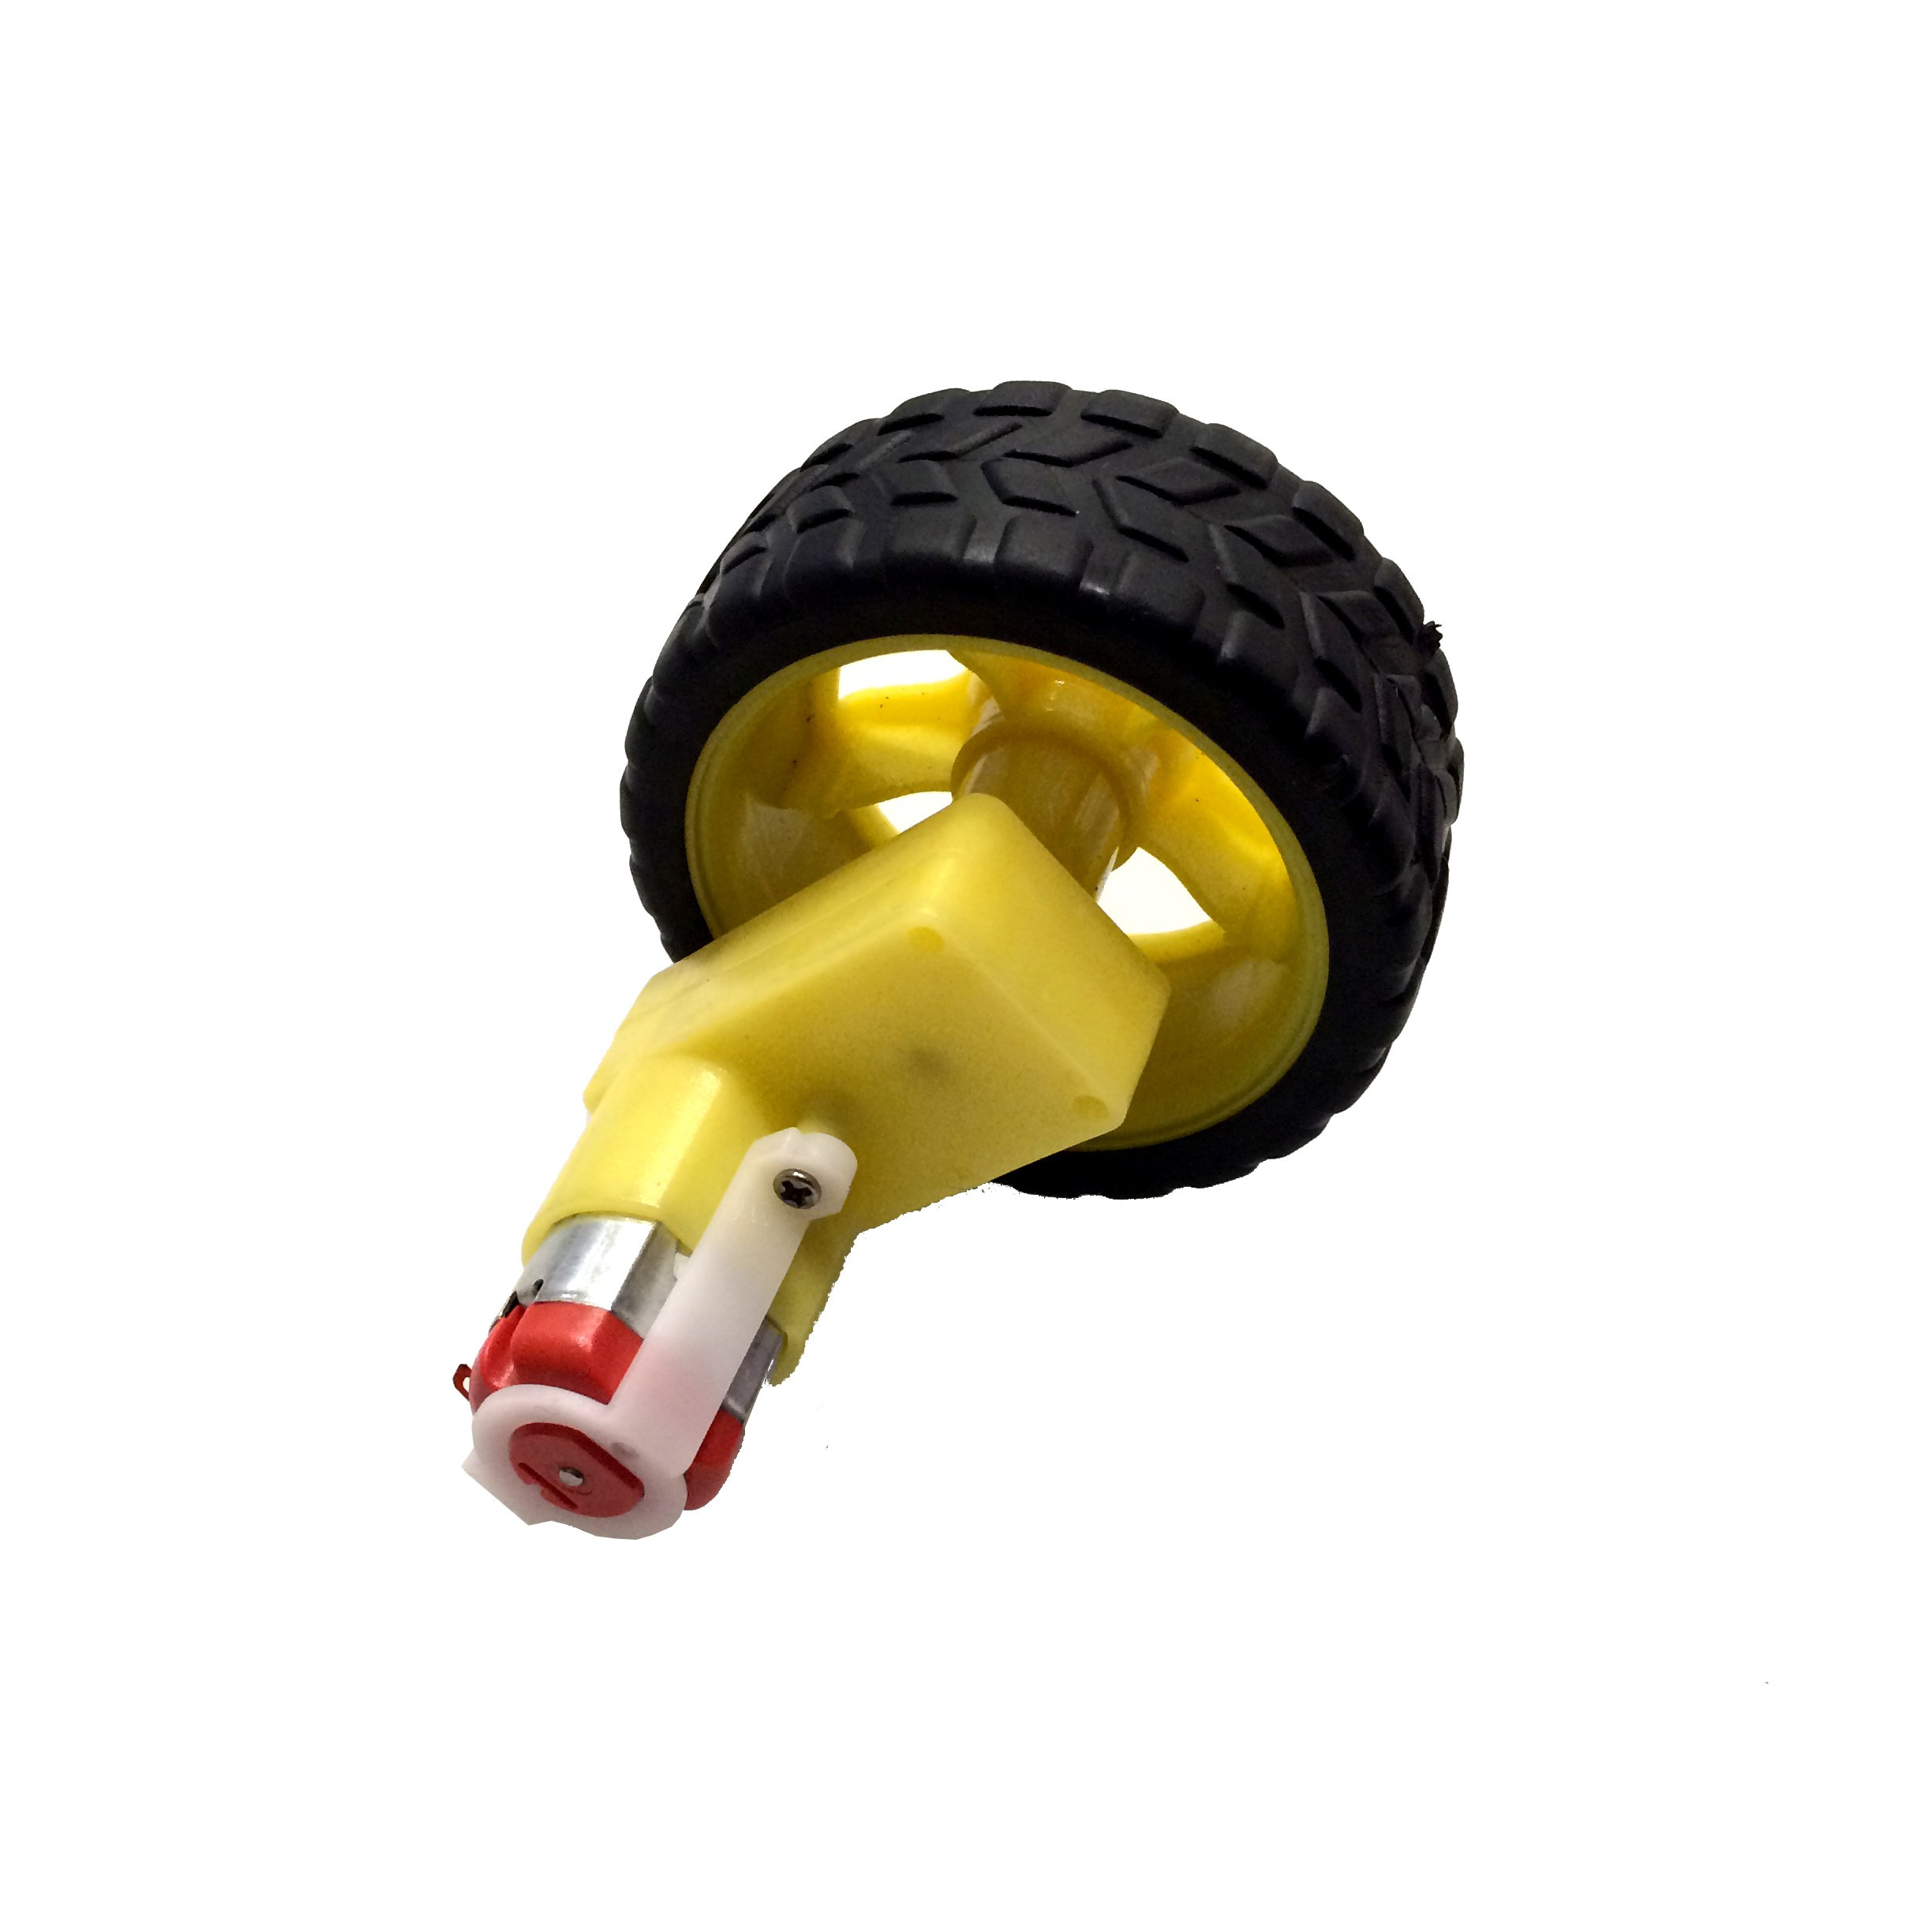 Robot car wheel motor 250 rpm tinkersphere for Robot motors and wheels